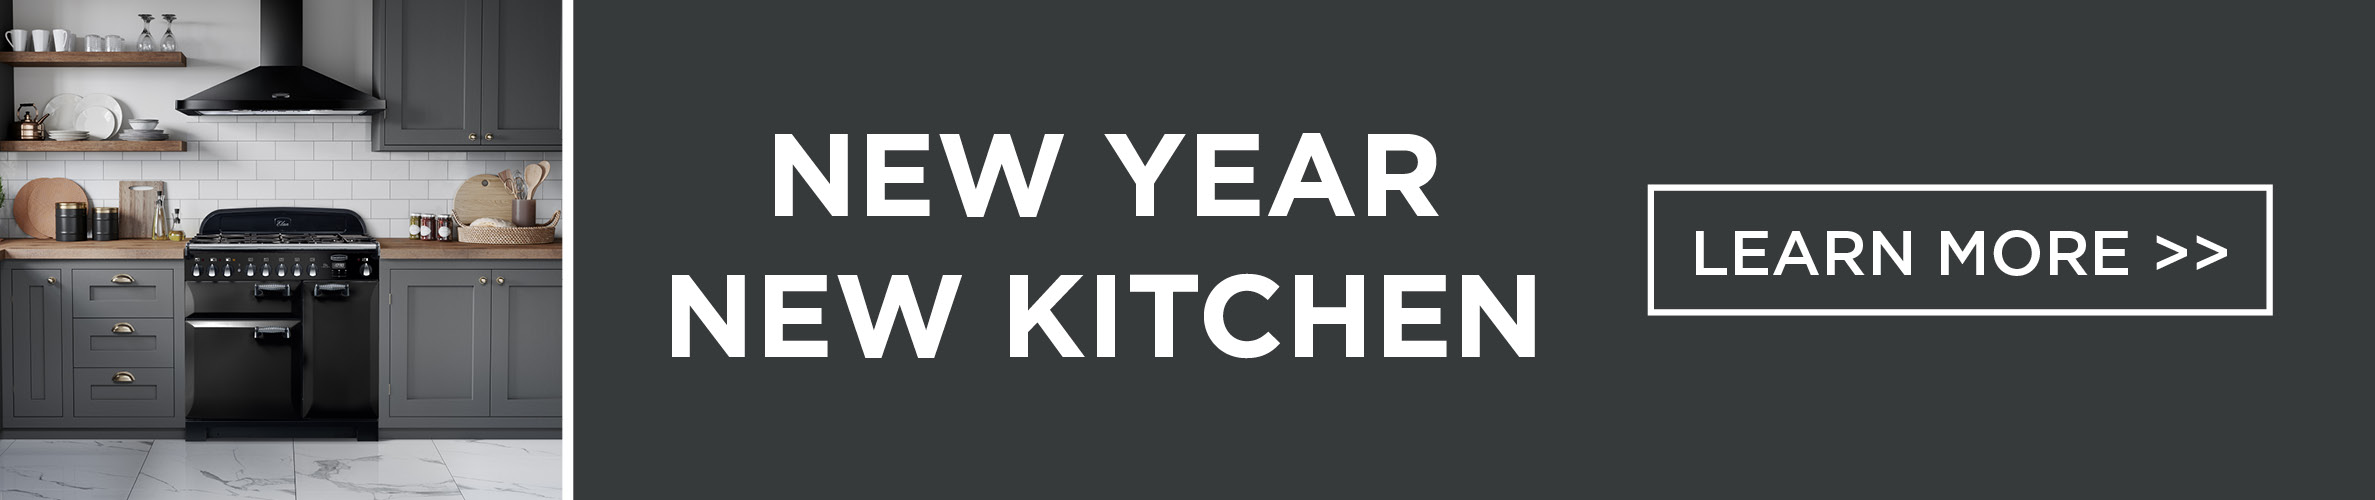 New Year New Kitchen